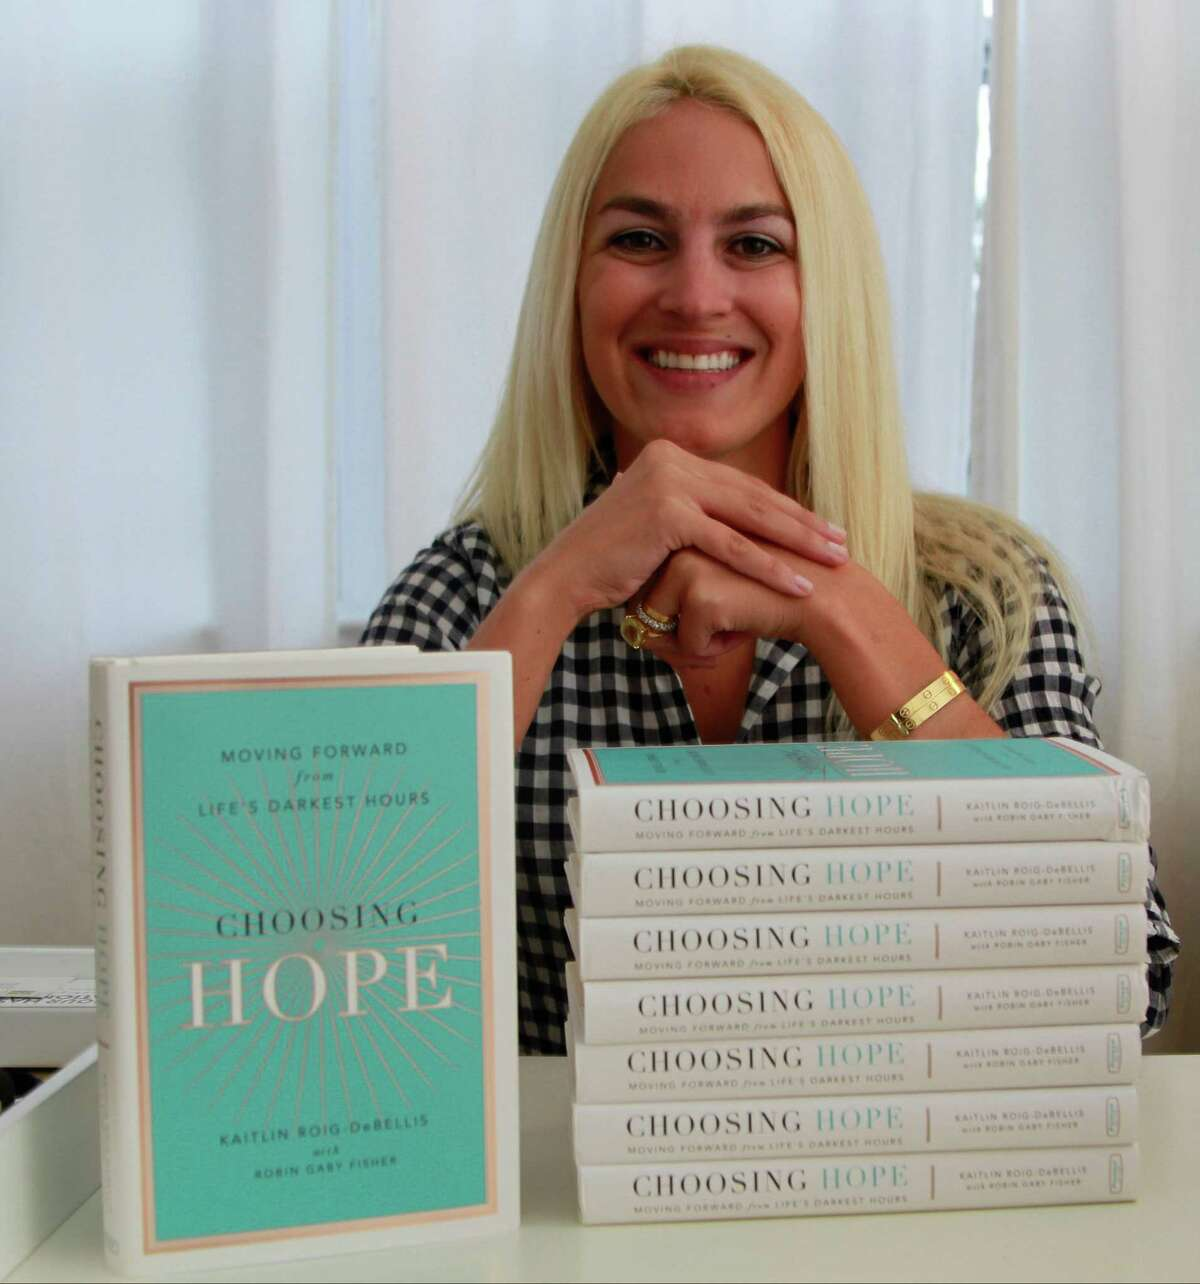 Kaitlin Roig-DeBellis, a former educator at Sandy Hook Elementary School, at her home in Greenwich on Wednesday. The Sandy Hook teacher wrote a book about surviving the December 2012 tragedy called